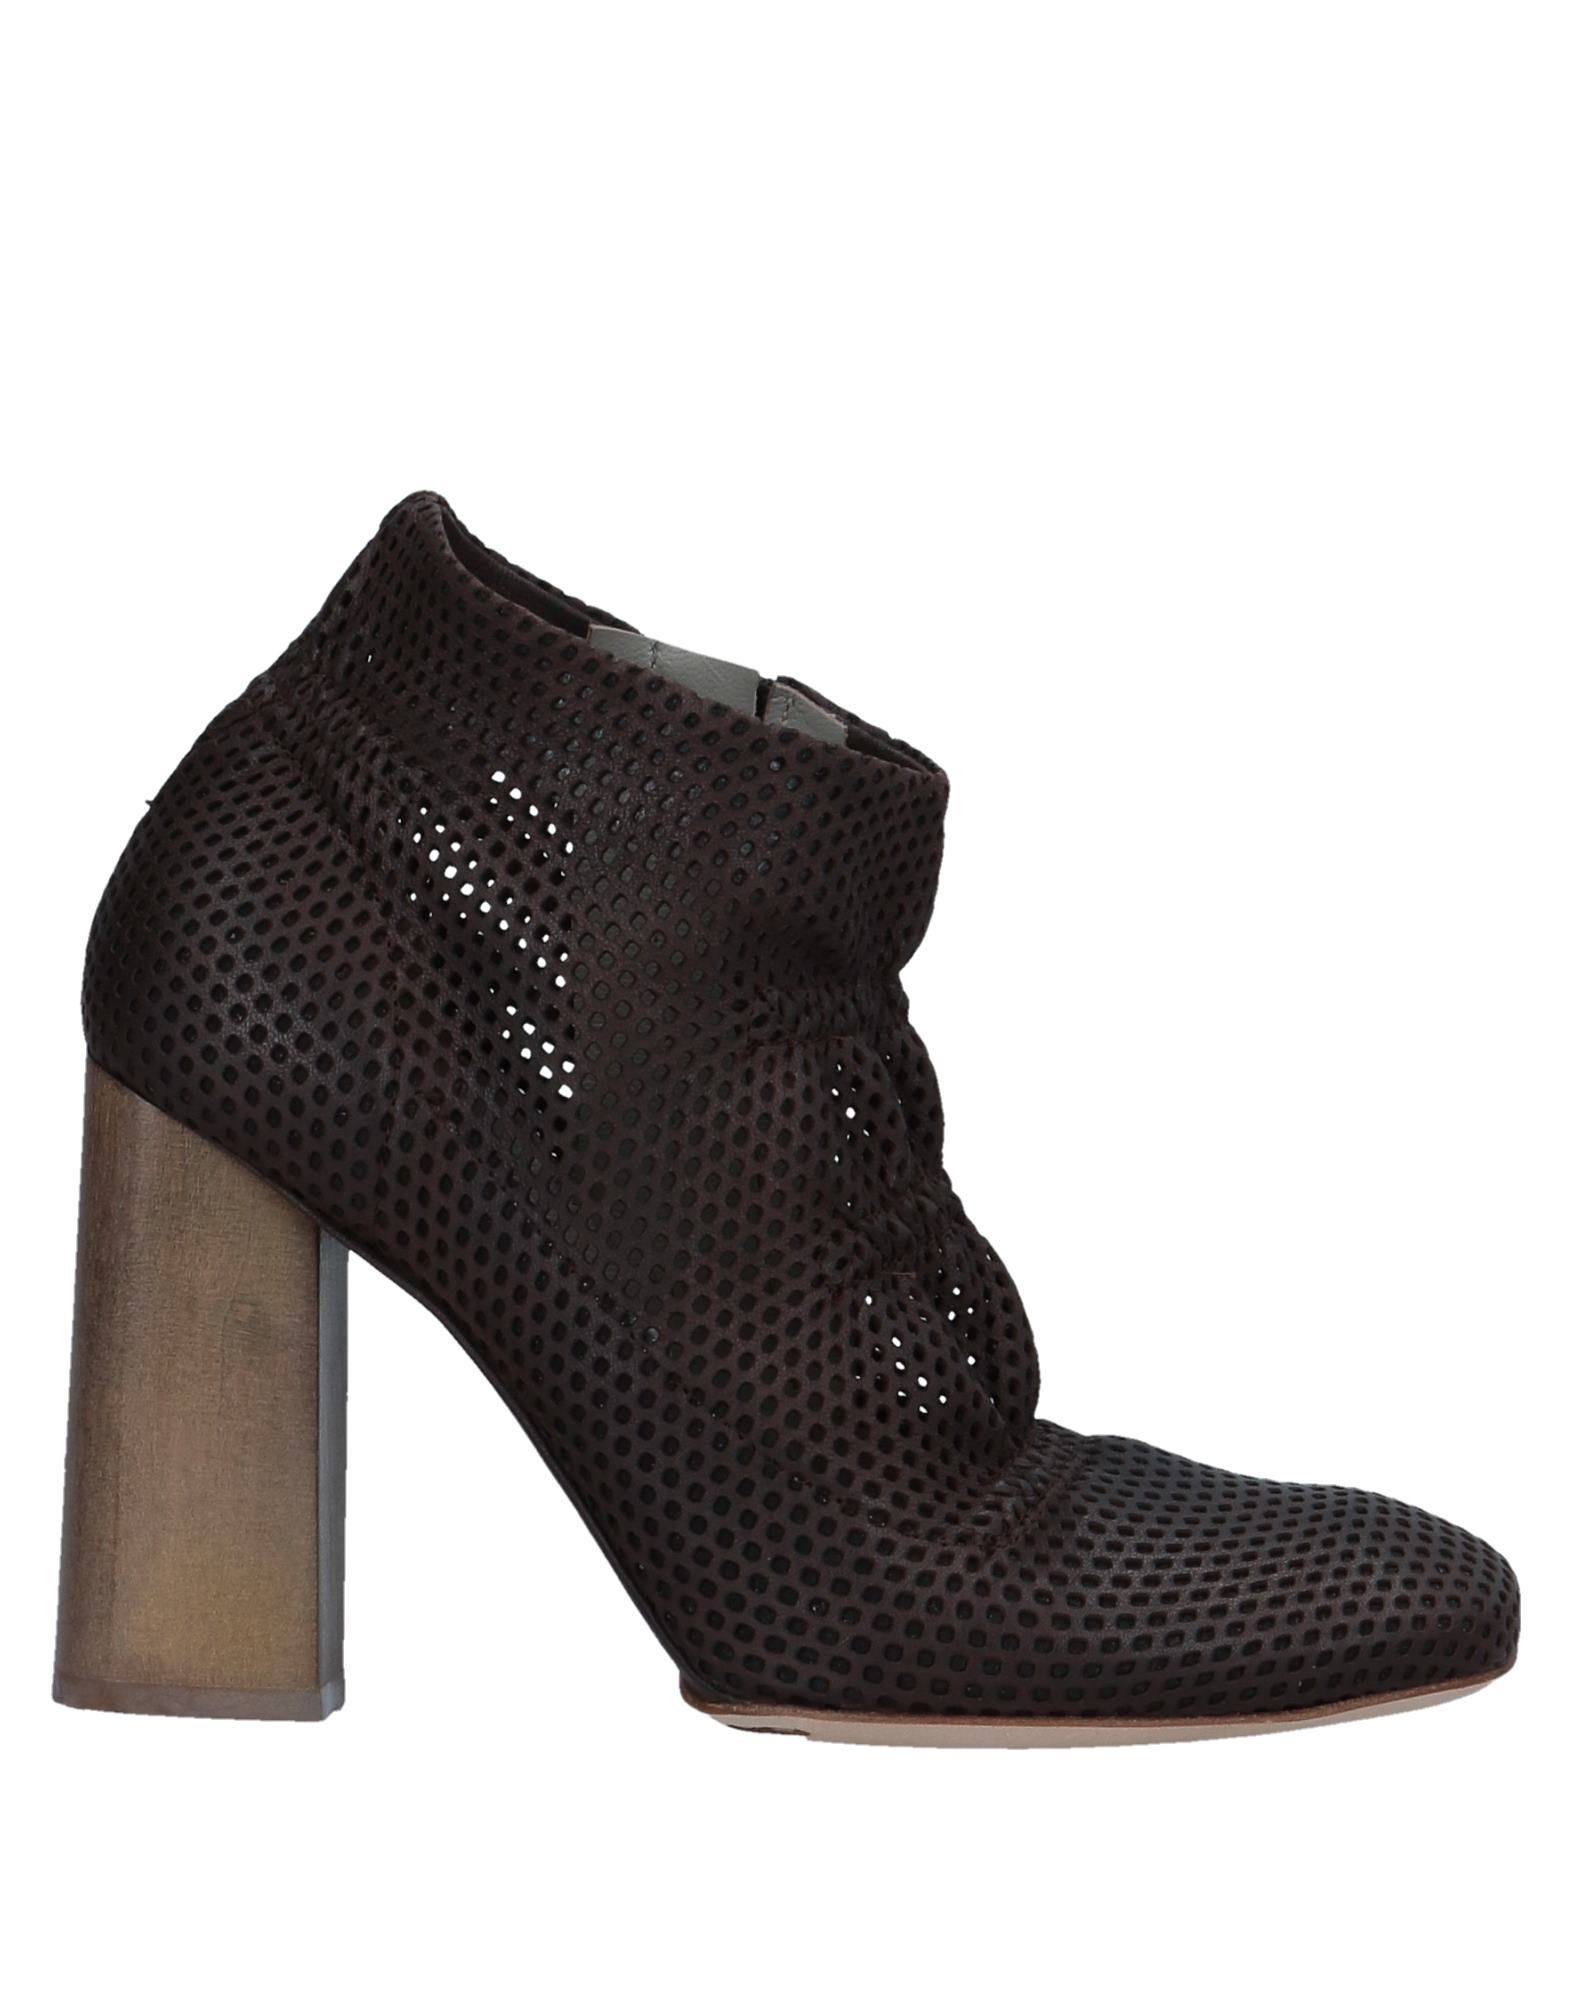 Ixos Ankle Boot - Women on Ixos Ankle Boots online on Women  United Kingdom - 11527638MB f3aed1